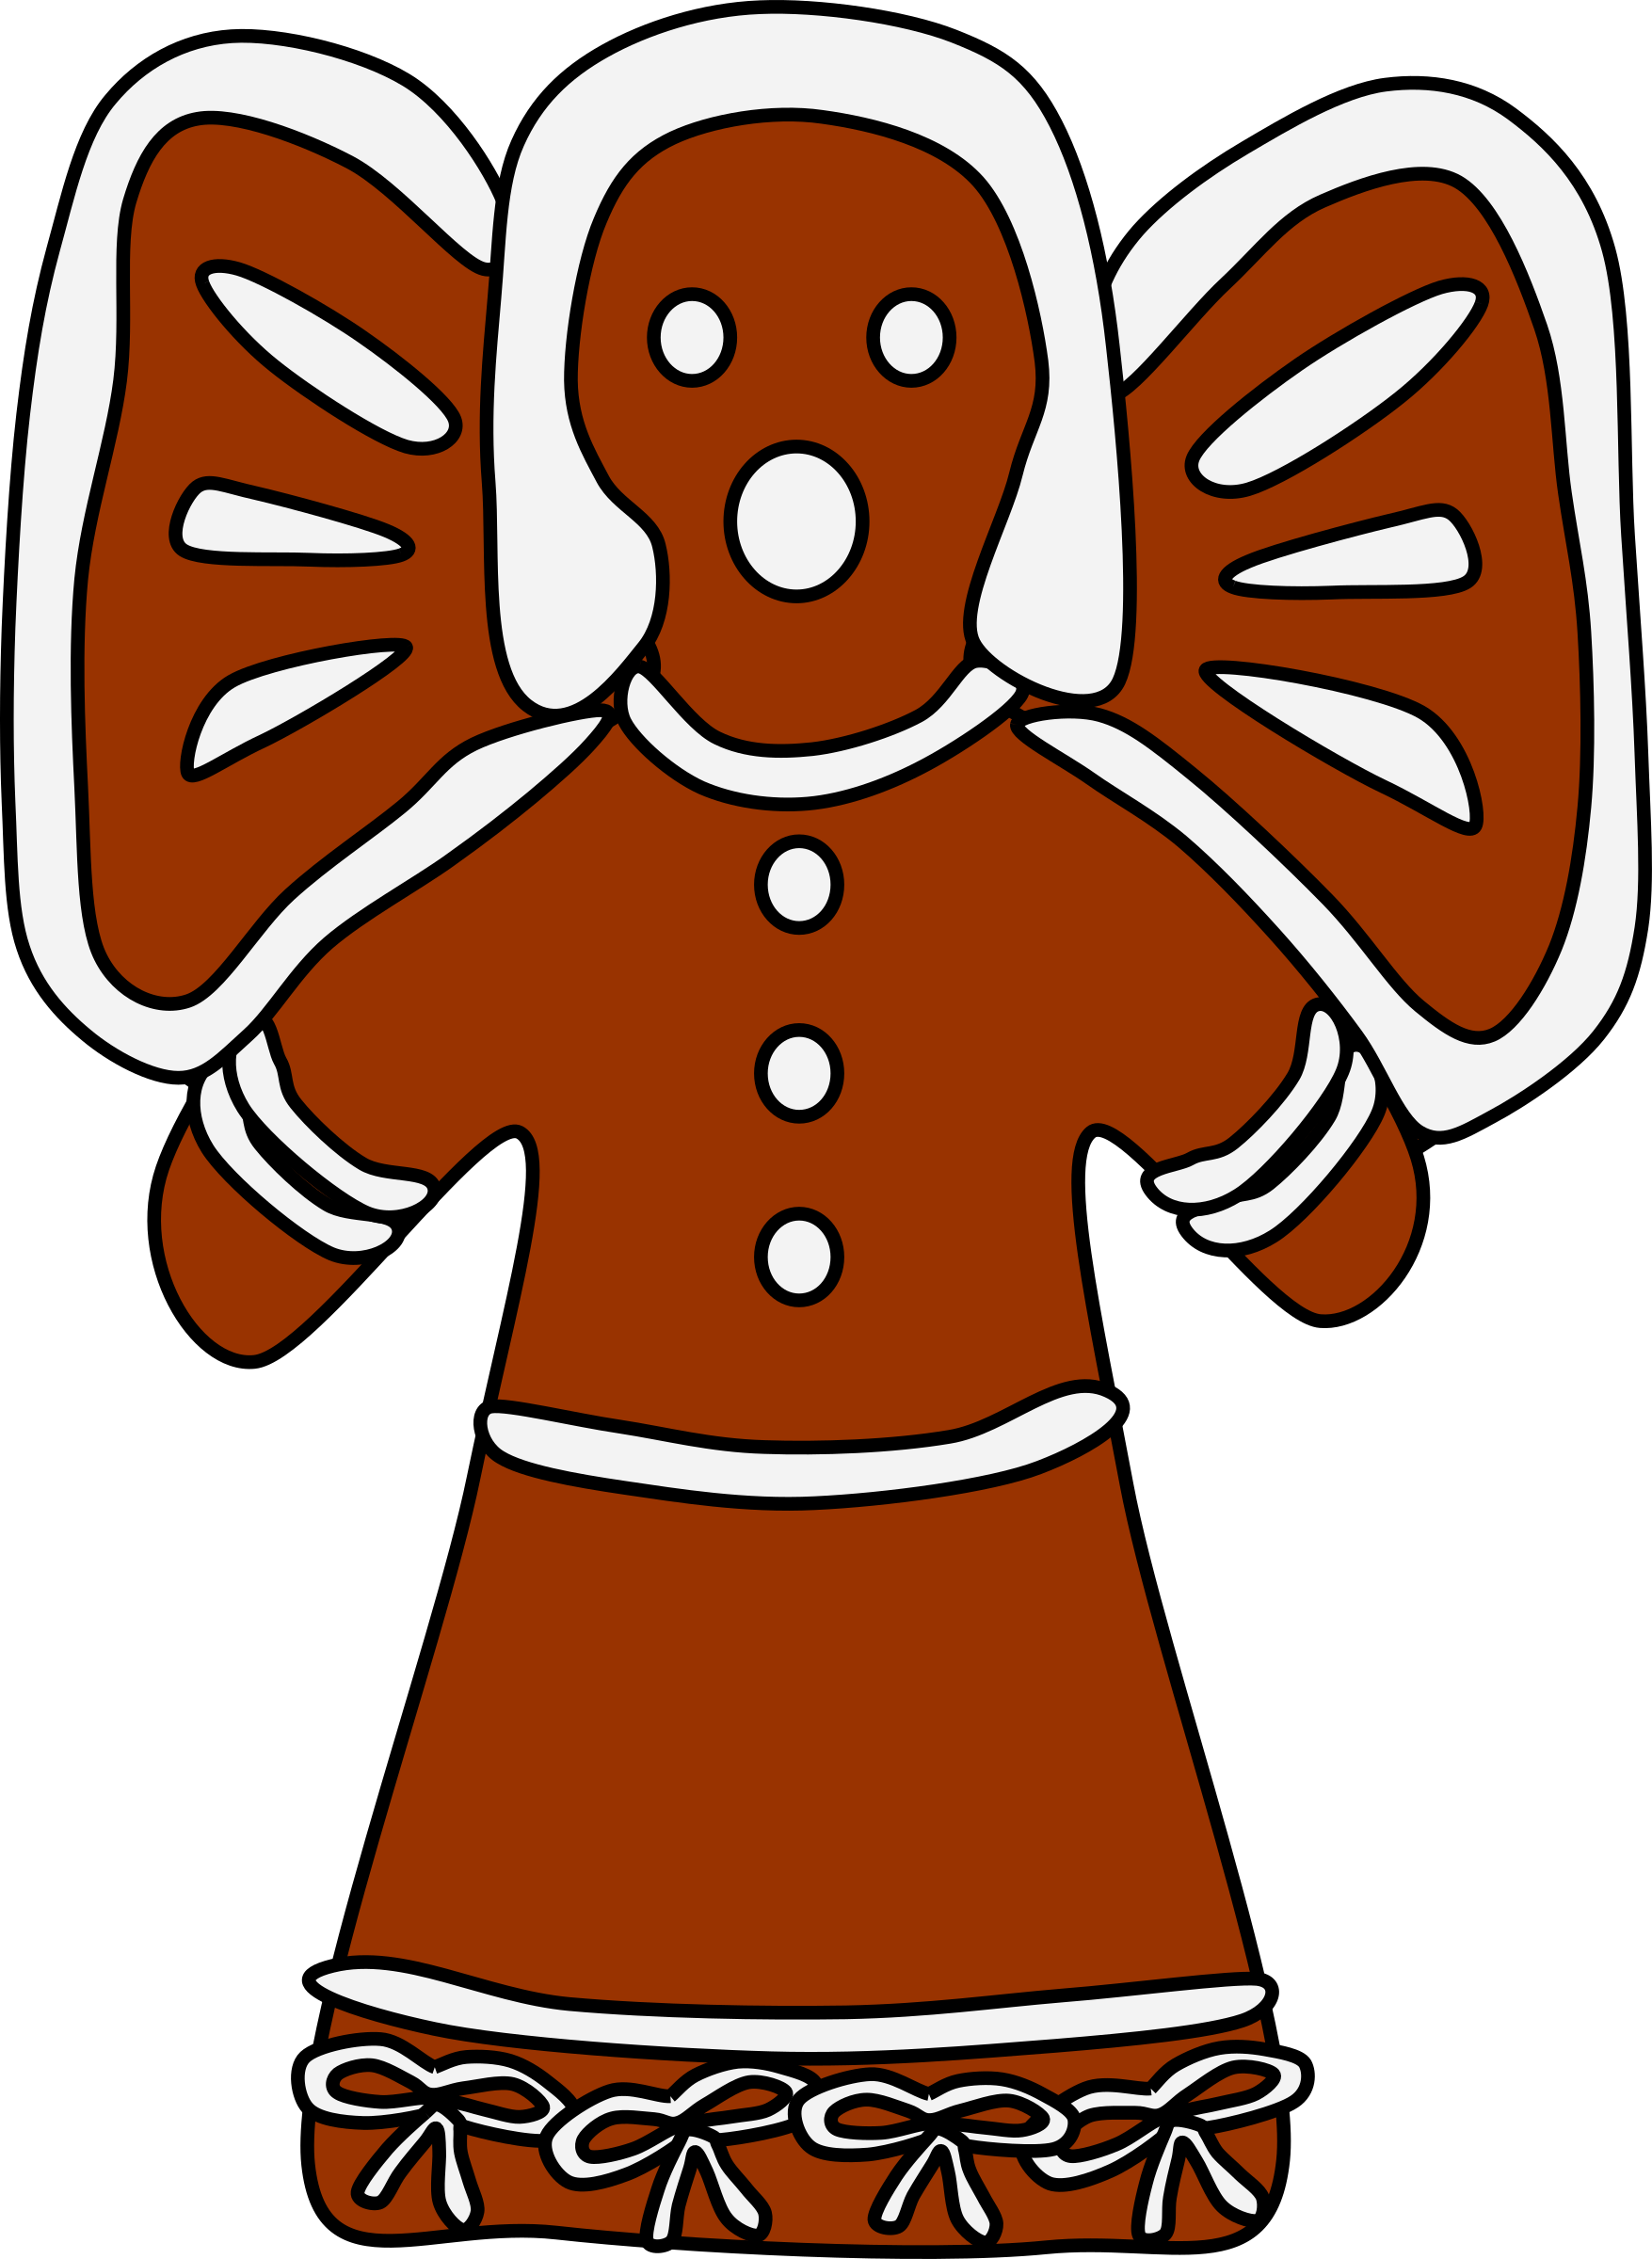 Gingerbread clipart big. Angel with bows image